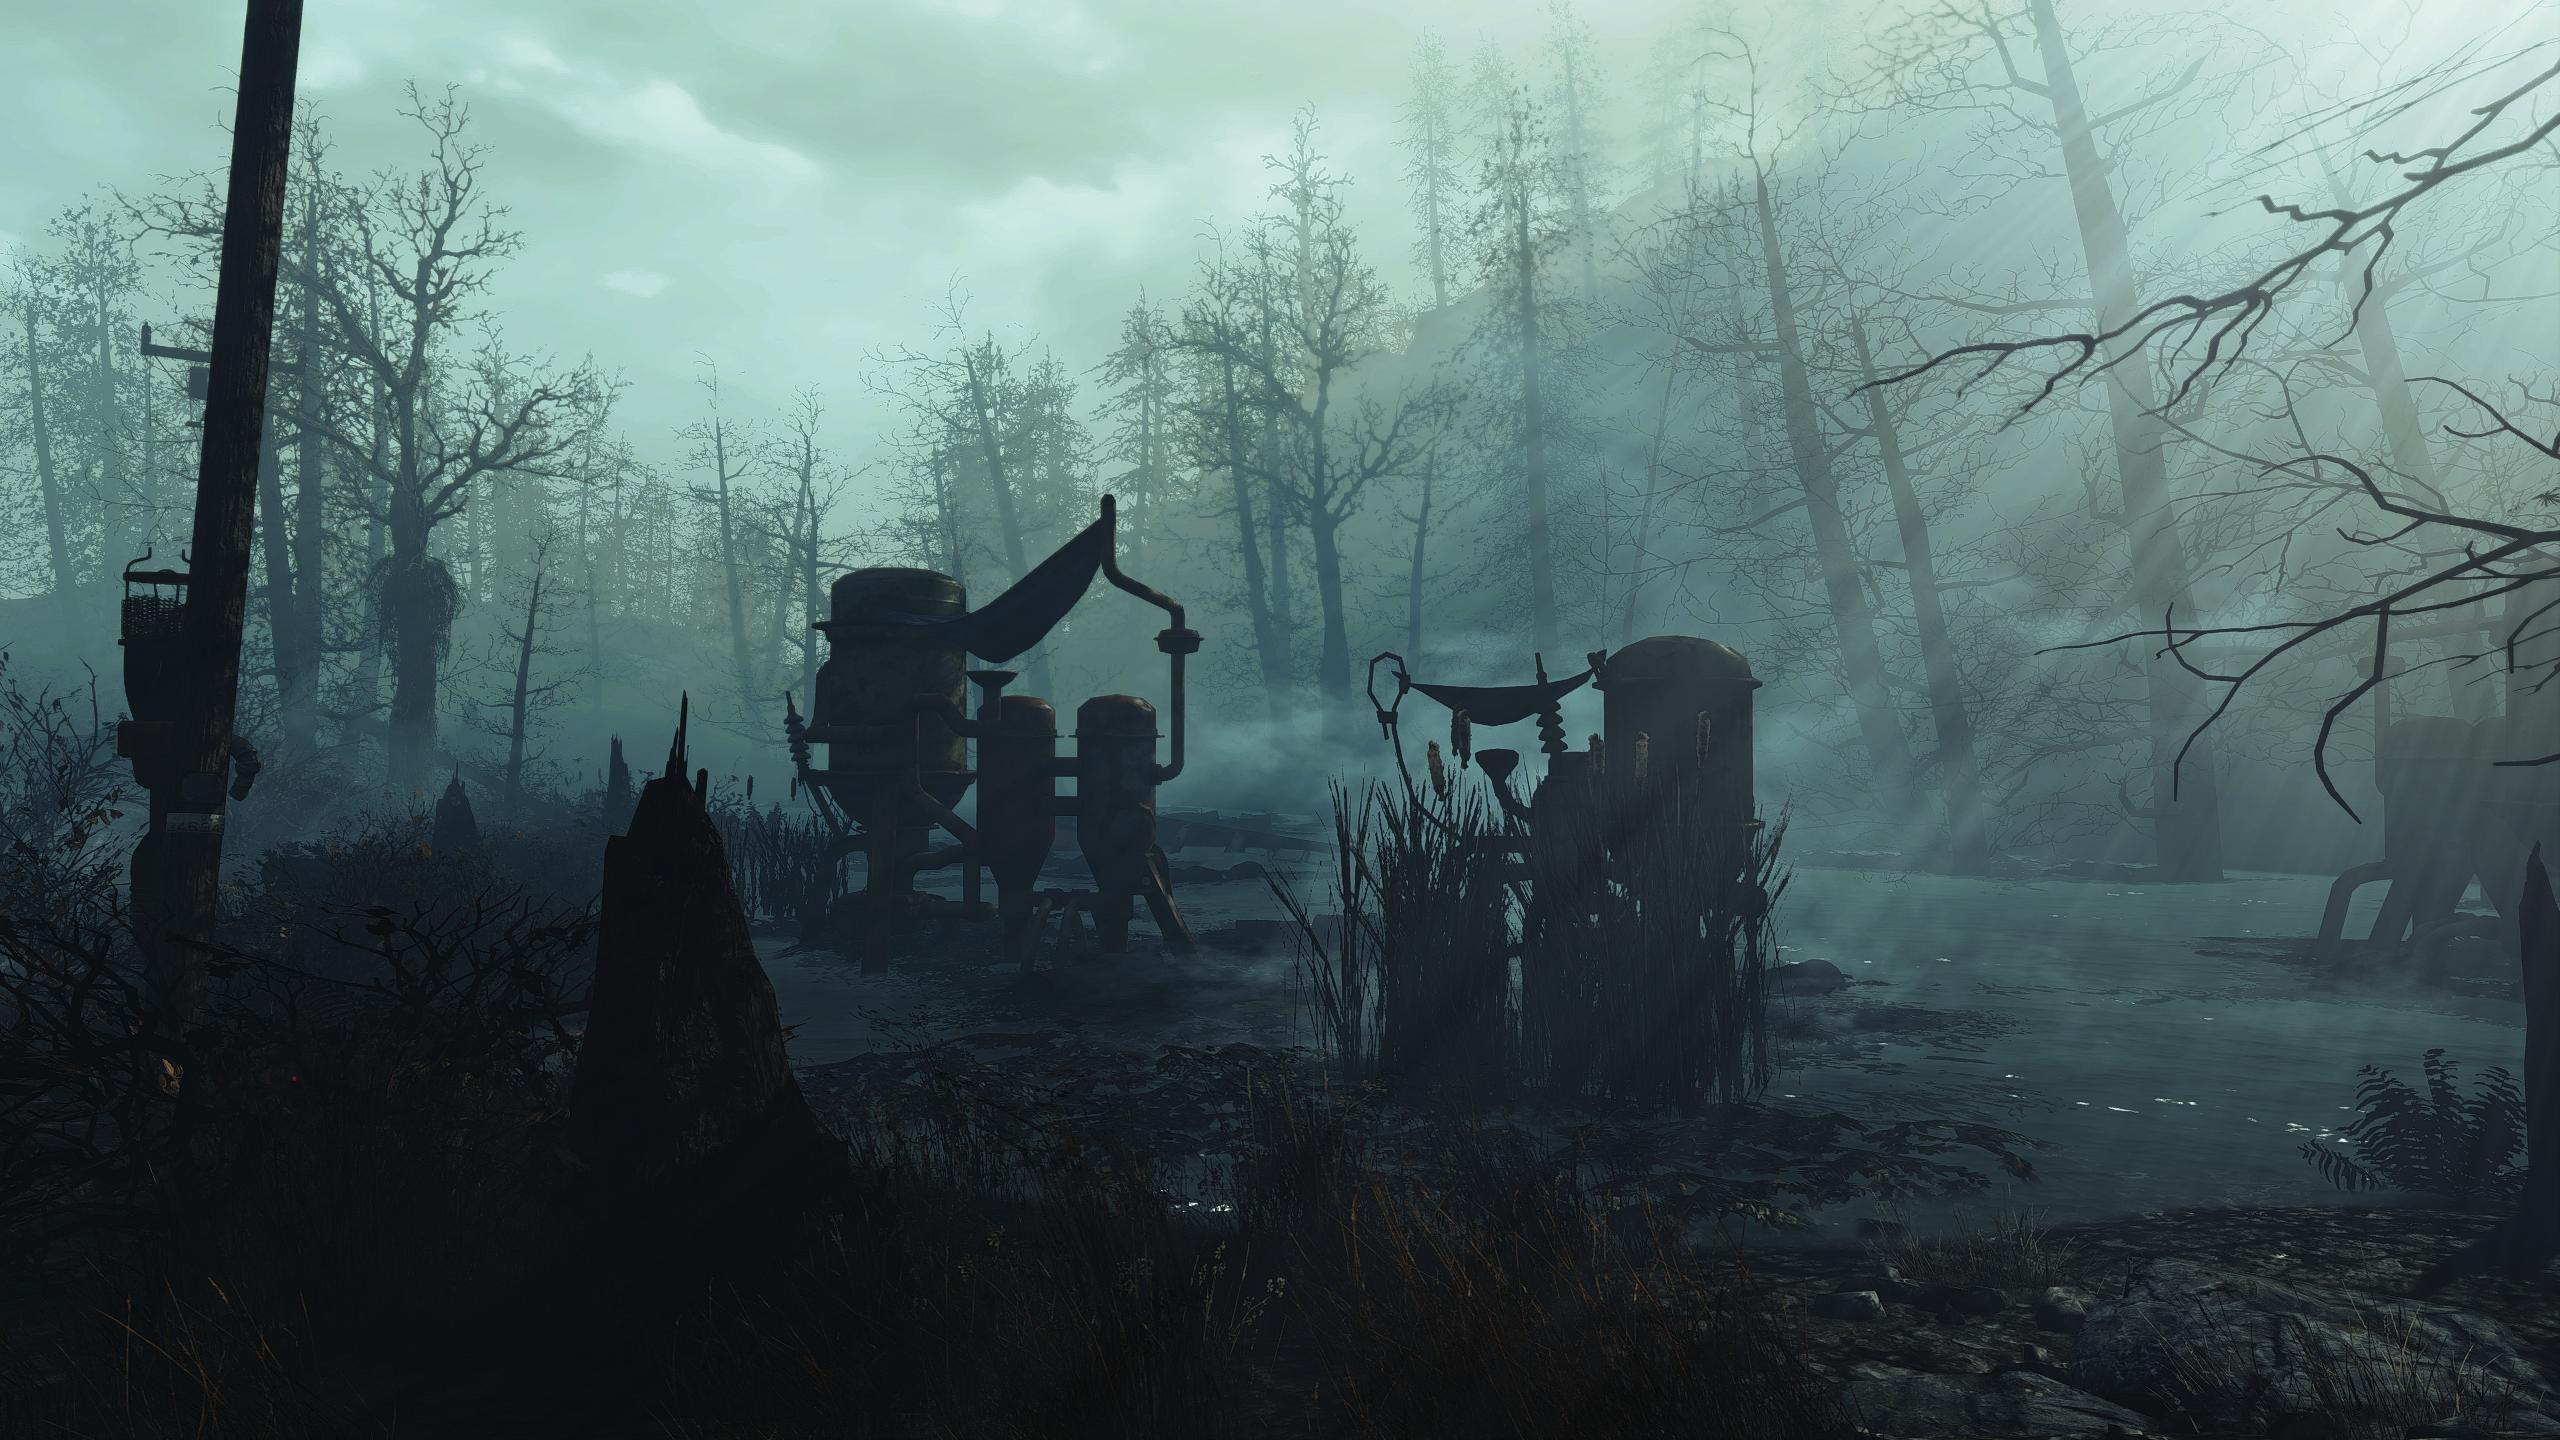 Fallout 4 Far Harbor Looks Glorious With This Sweetfx Config